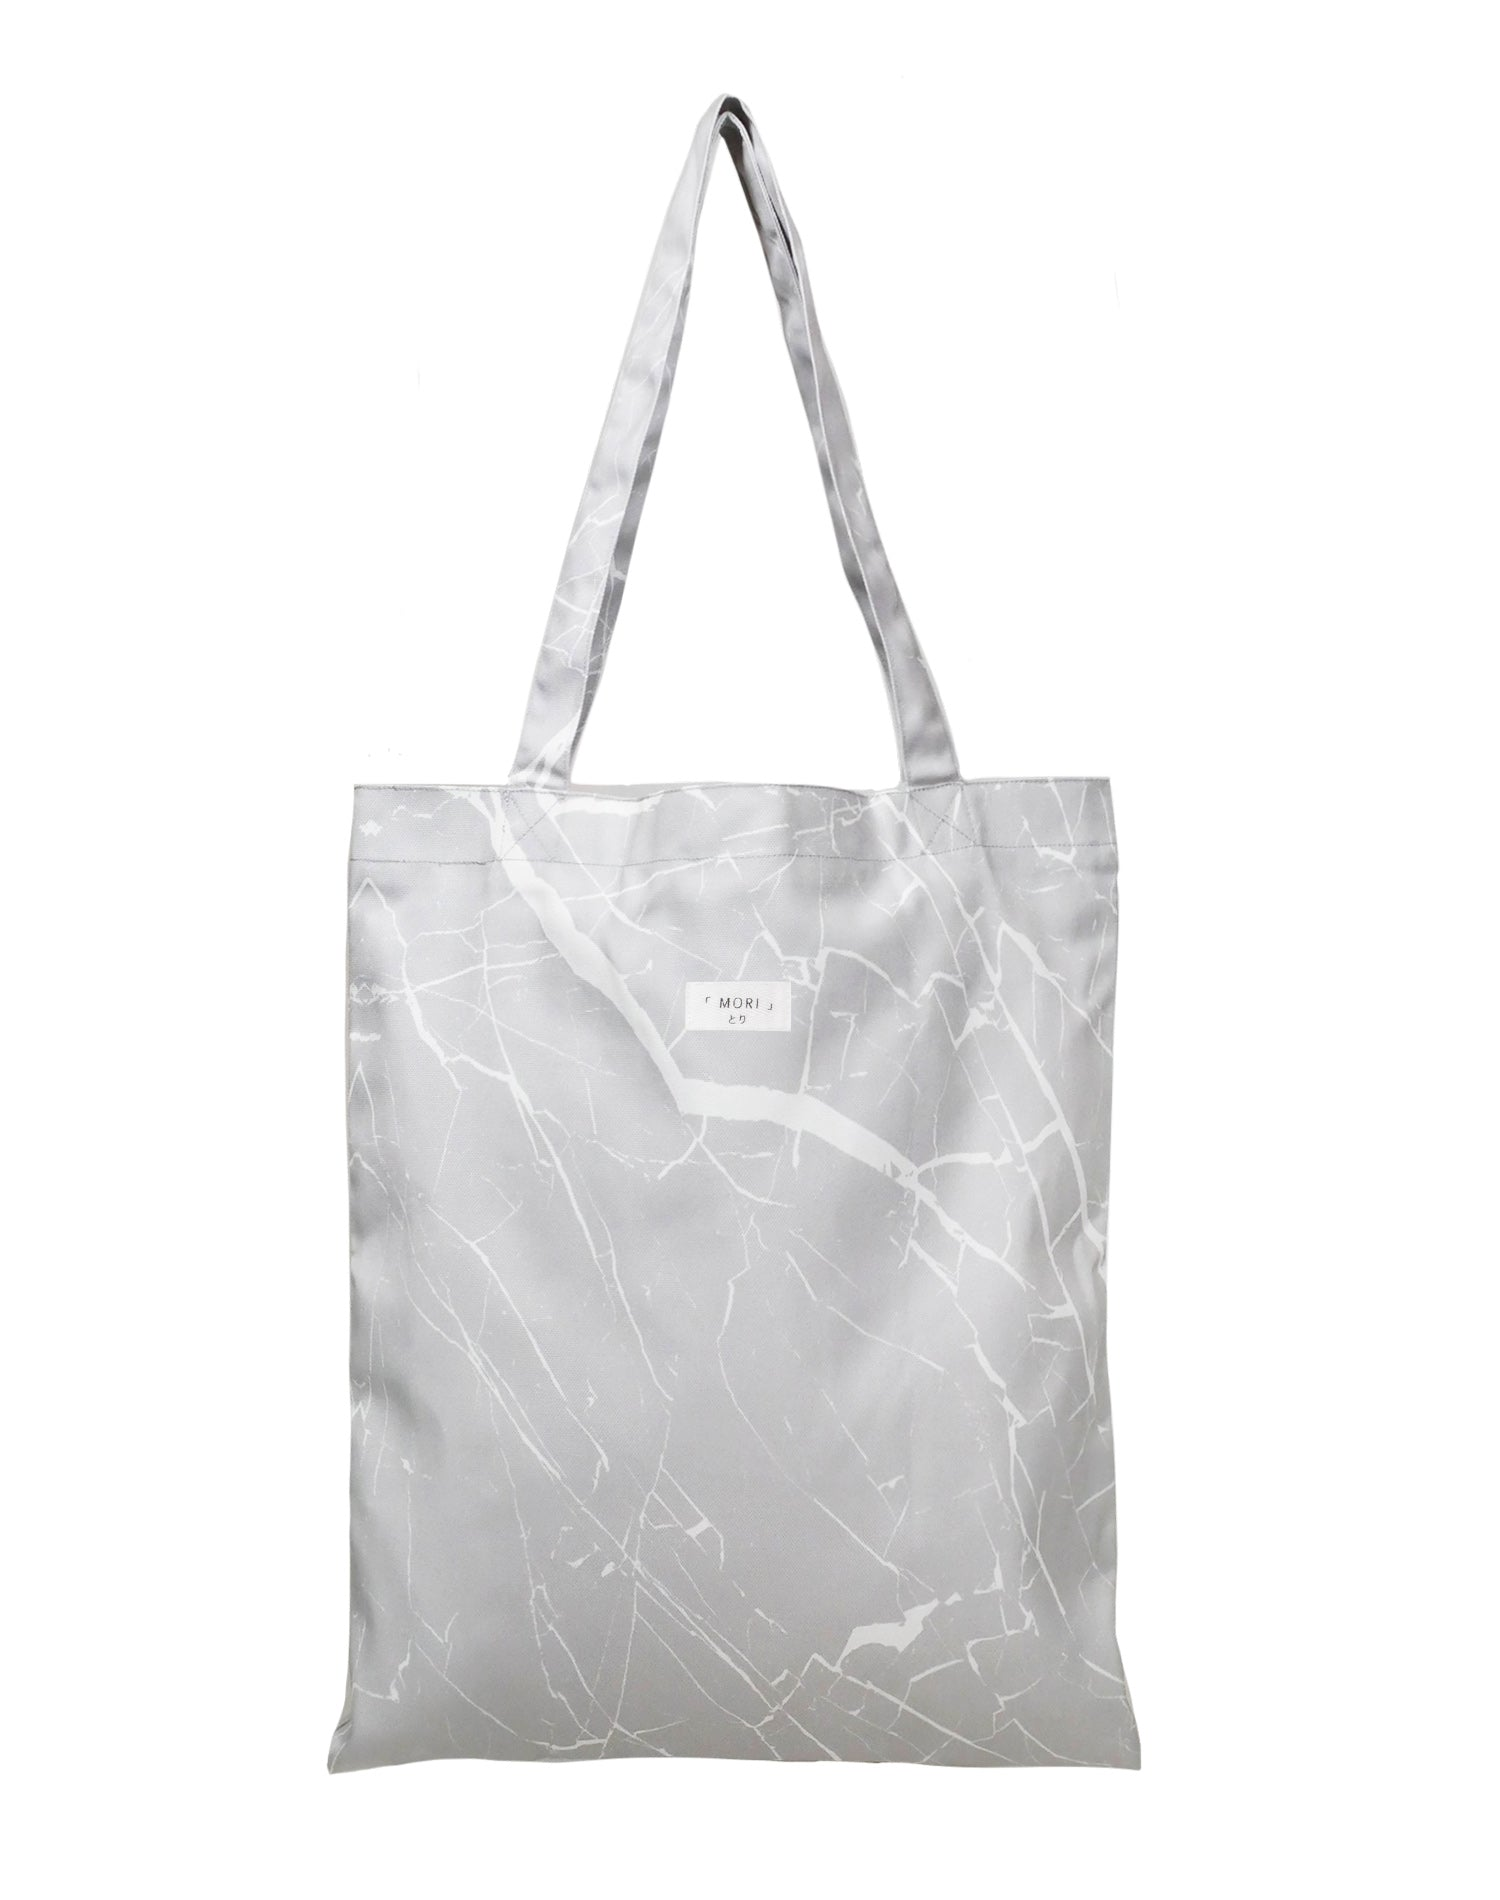 Grey Creek Canvas Tote Bag.灰溪帆布側背袋